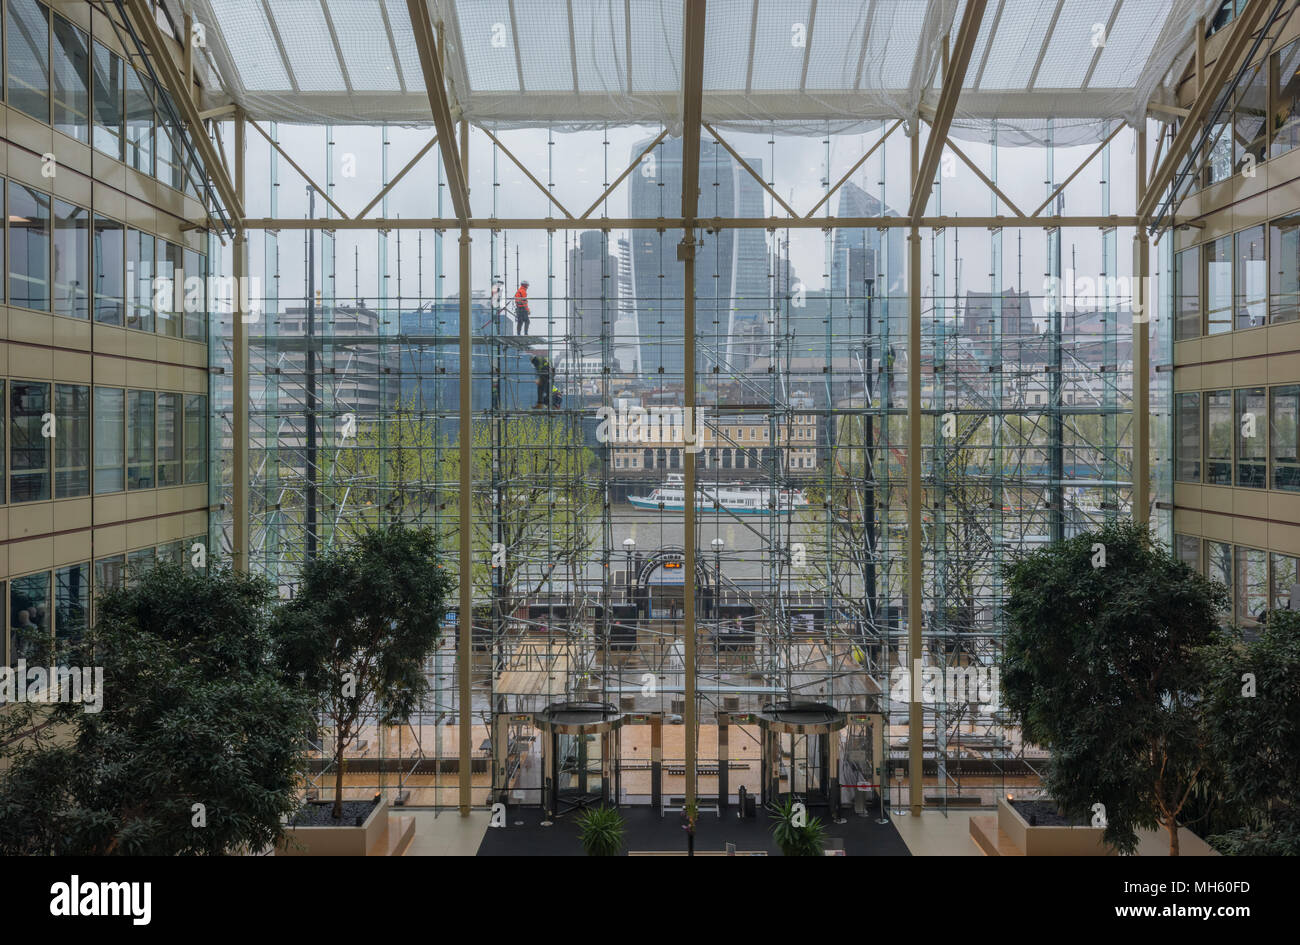 London, UK. 30th April, 2018. Brave scaffolders battling with the high winds and late April rain and cold at the Cottons centre on the South bank of the river Thames in central London. Scaffolders clipped onto the building to protect against falling from height on a large scaffold in central London. Credit: Steve Hawkins Photography/Alamy Live News - Stock Image